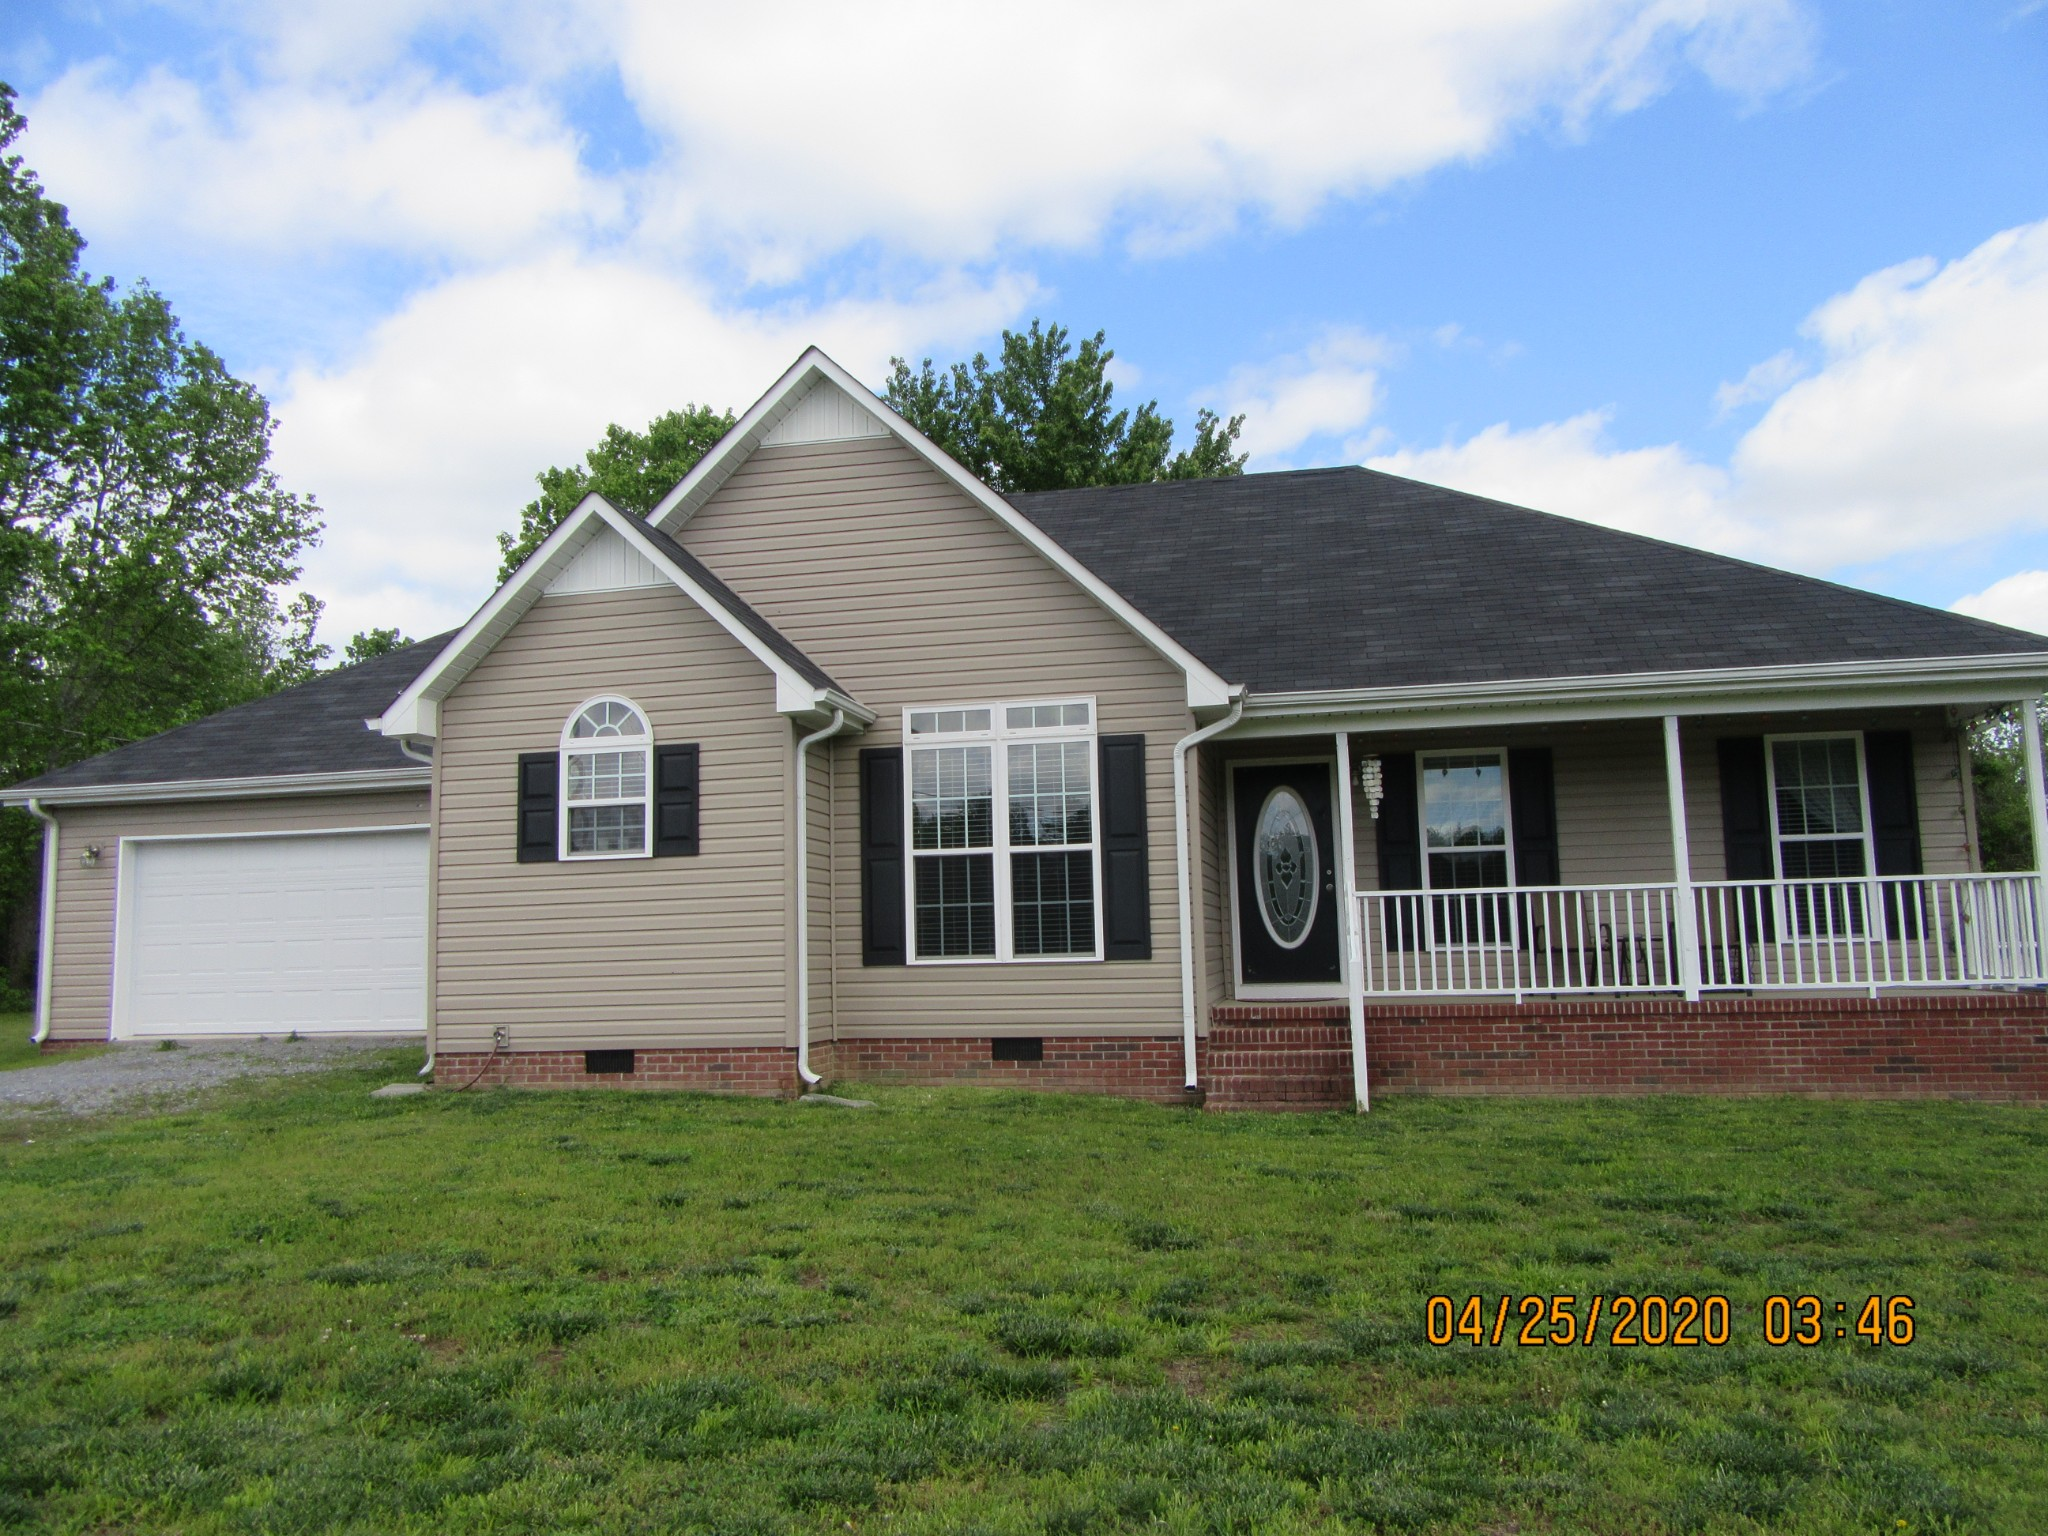 3 Ben Thompson Rd, Kelso, TN 37348 - Kelso, TN real estate listing